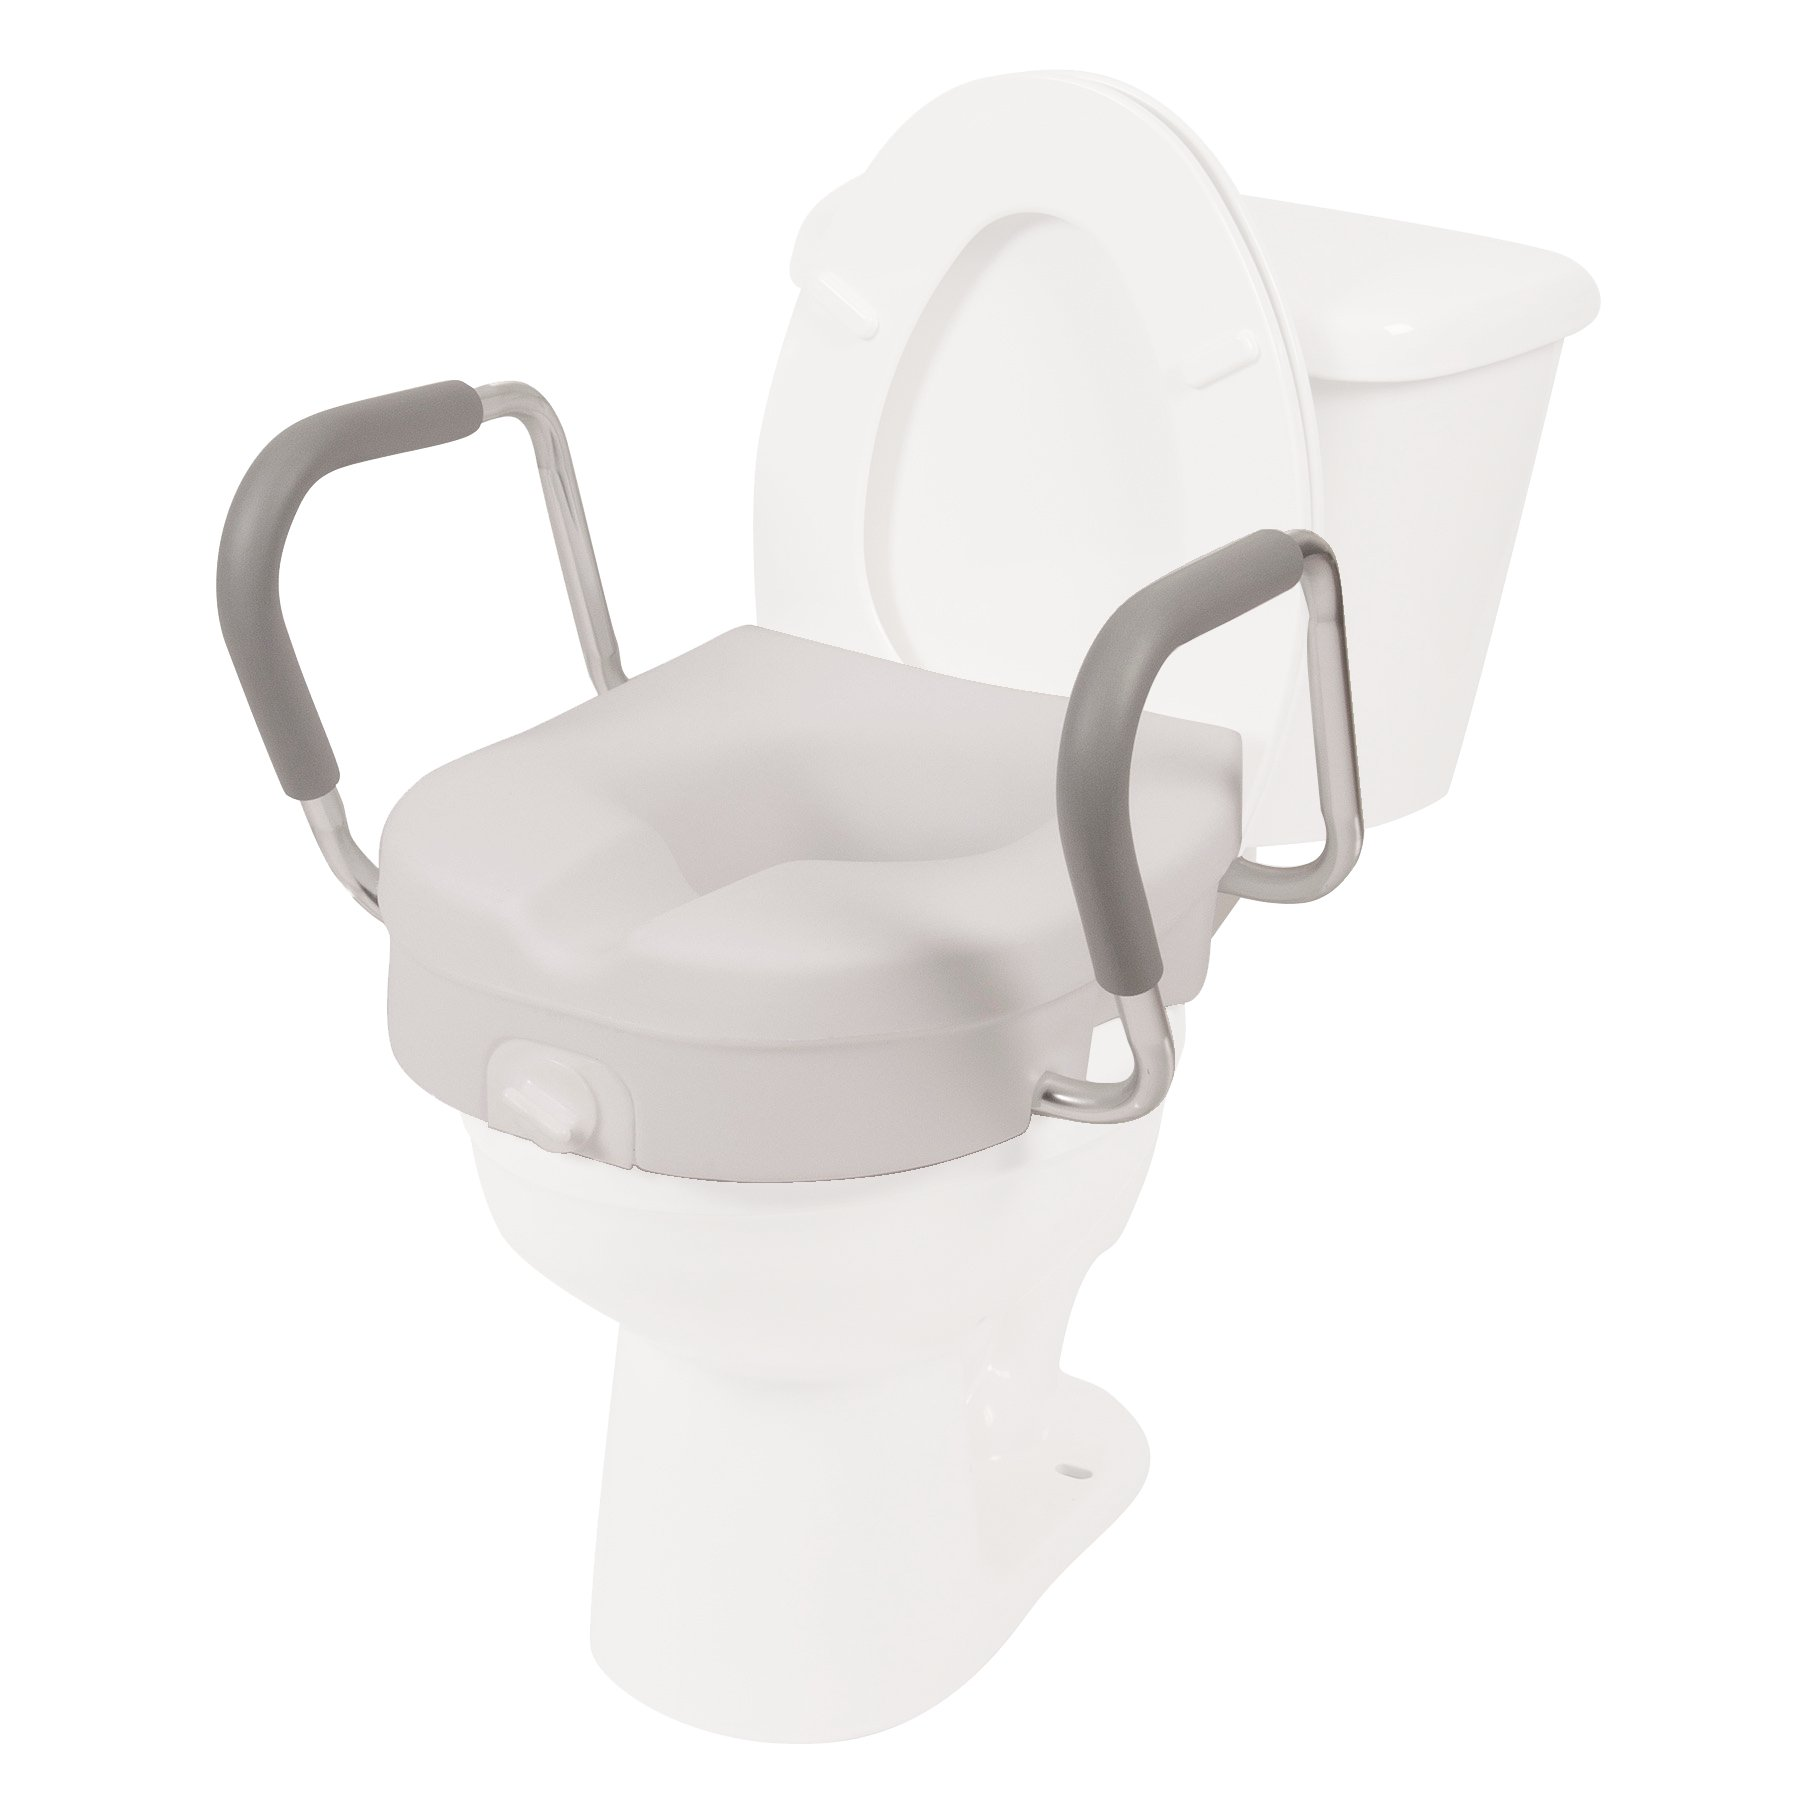 PCP 5'' Elevated Toilet Seat, Removable Arms, Raised Lift with Tightening Stability Lock, Portable Bath Safety Commode Support, Made in USA by PCP